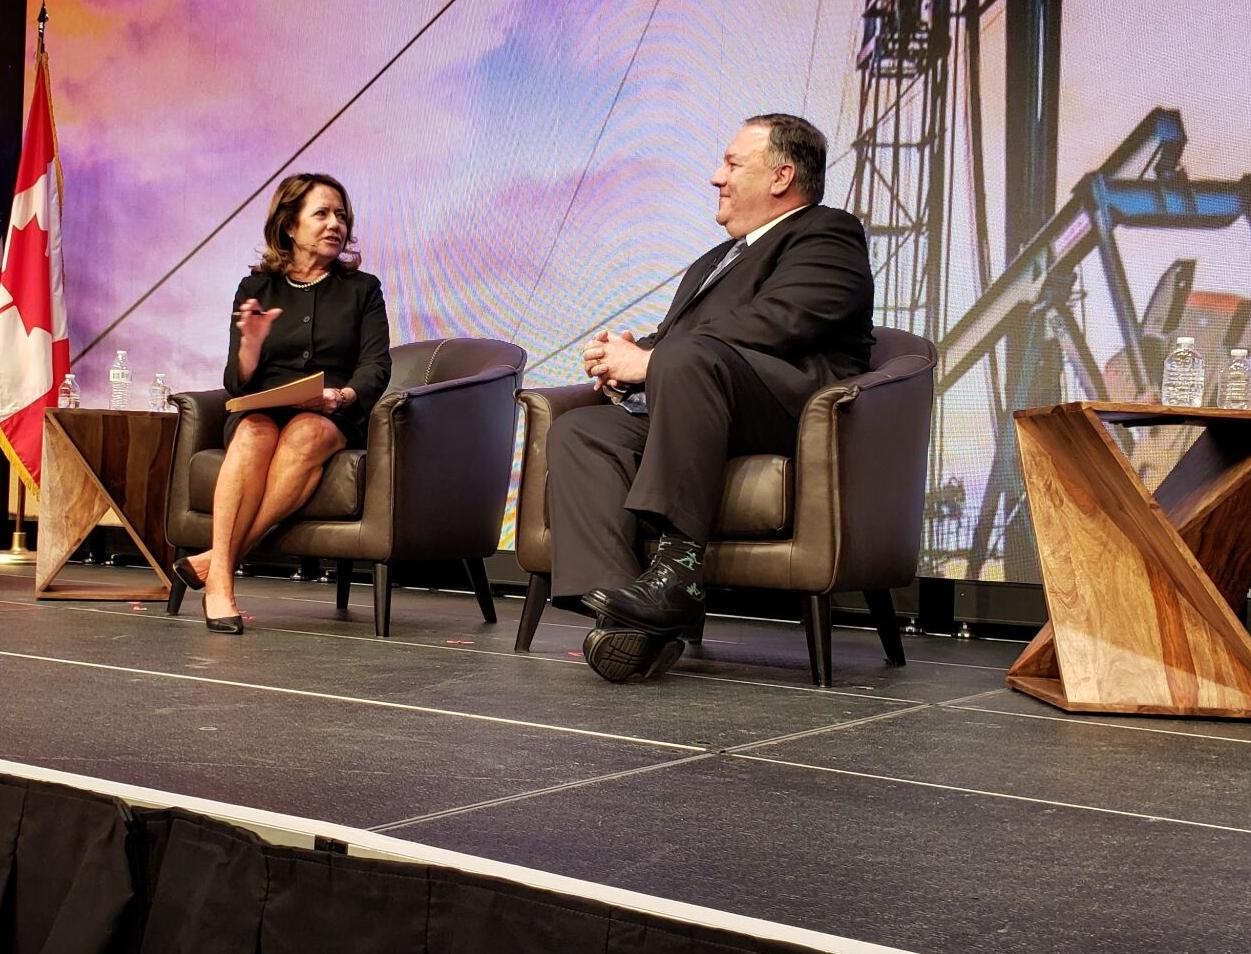 Pompeo: American energy has a role to play in easing geopolitical tensions